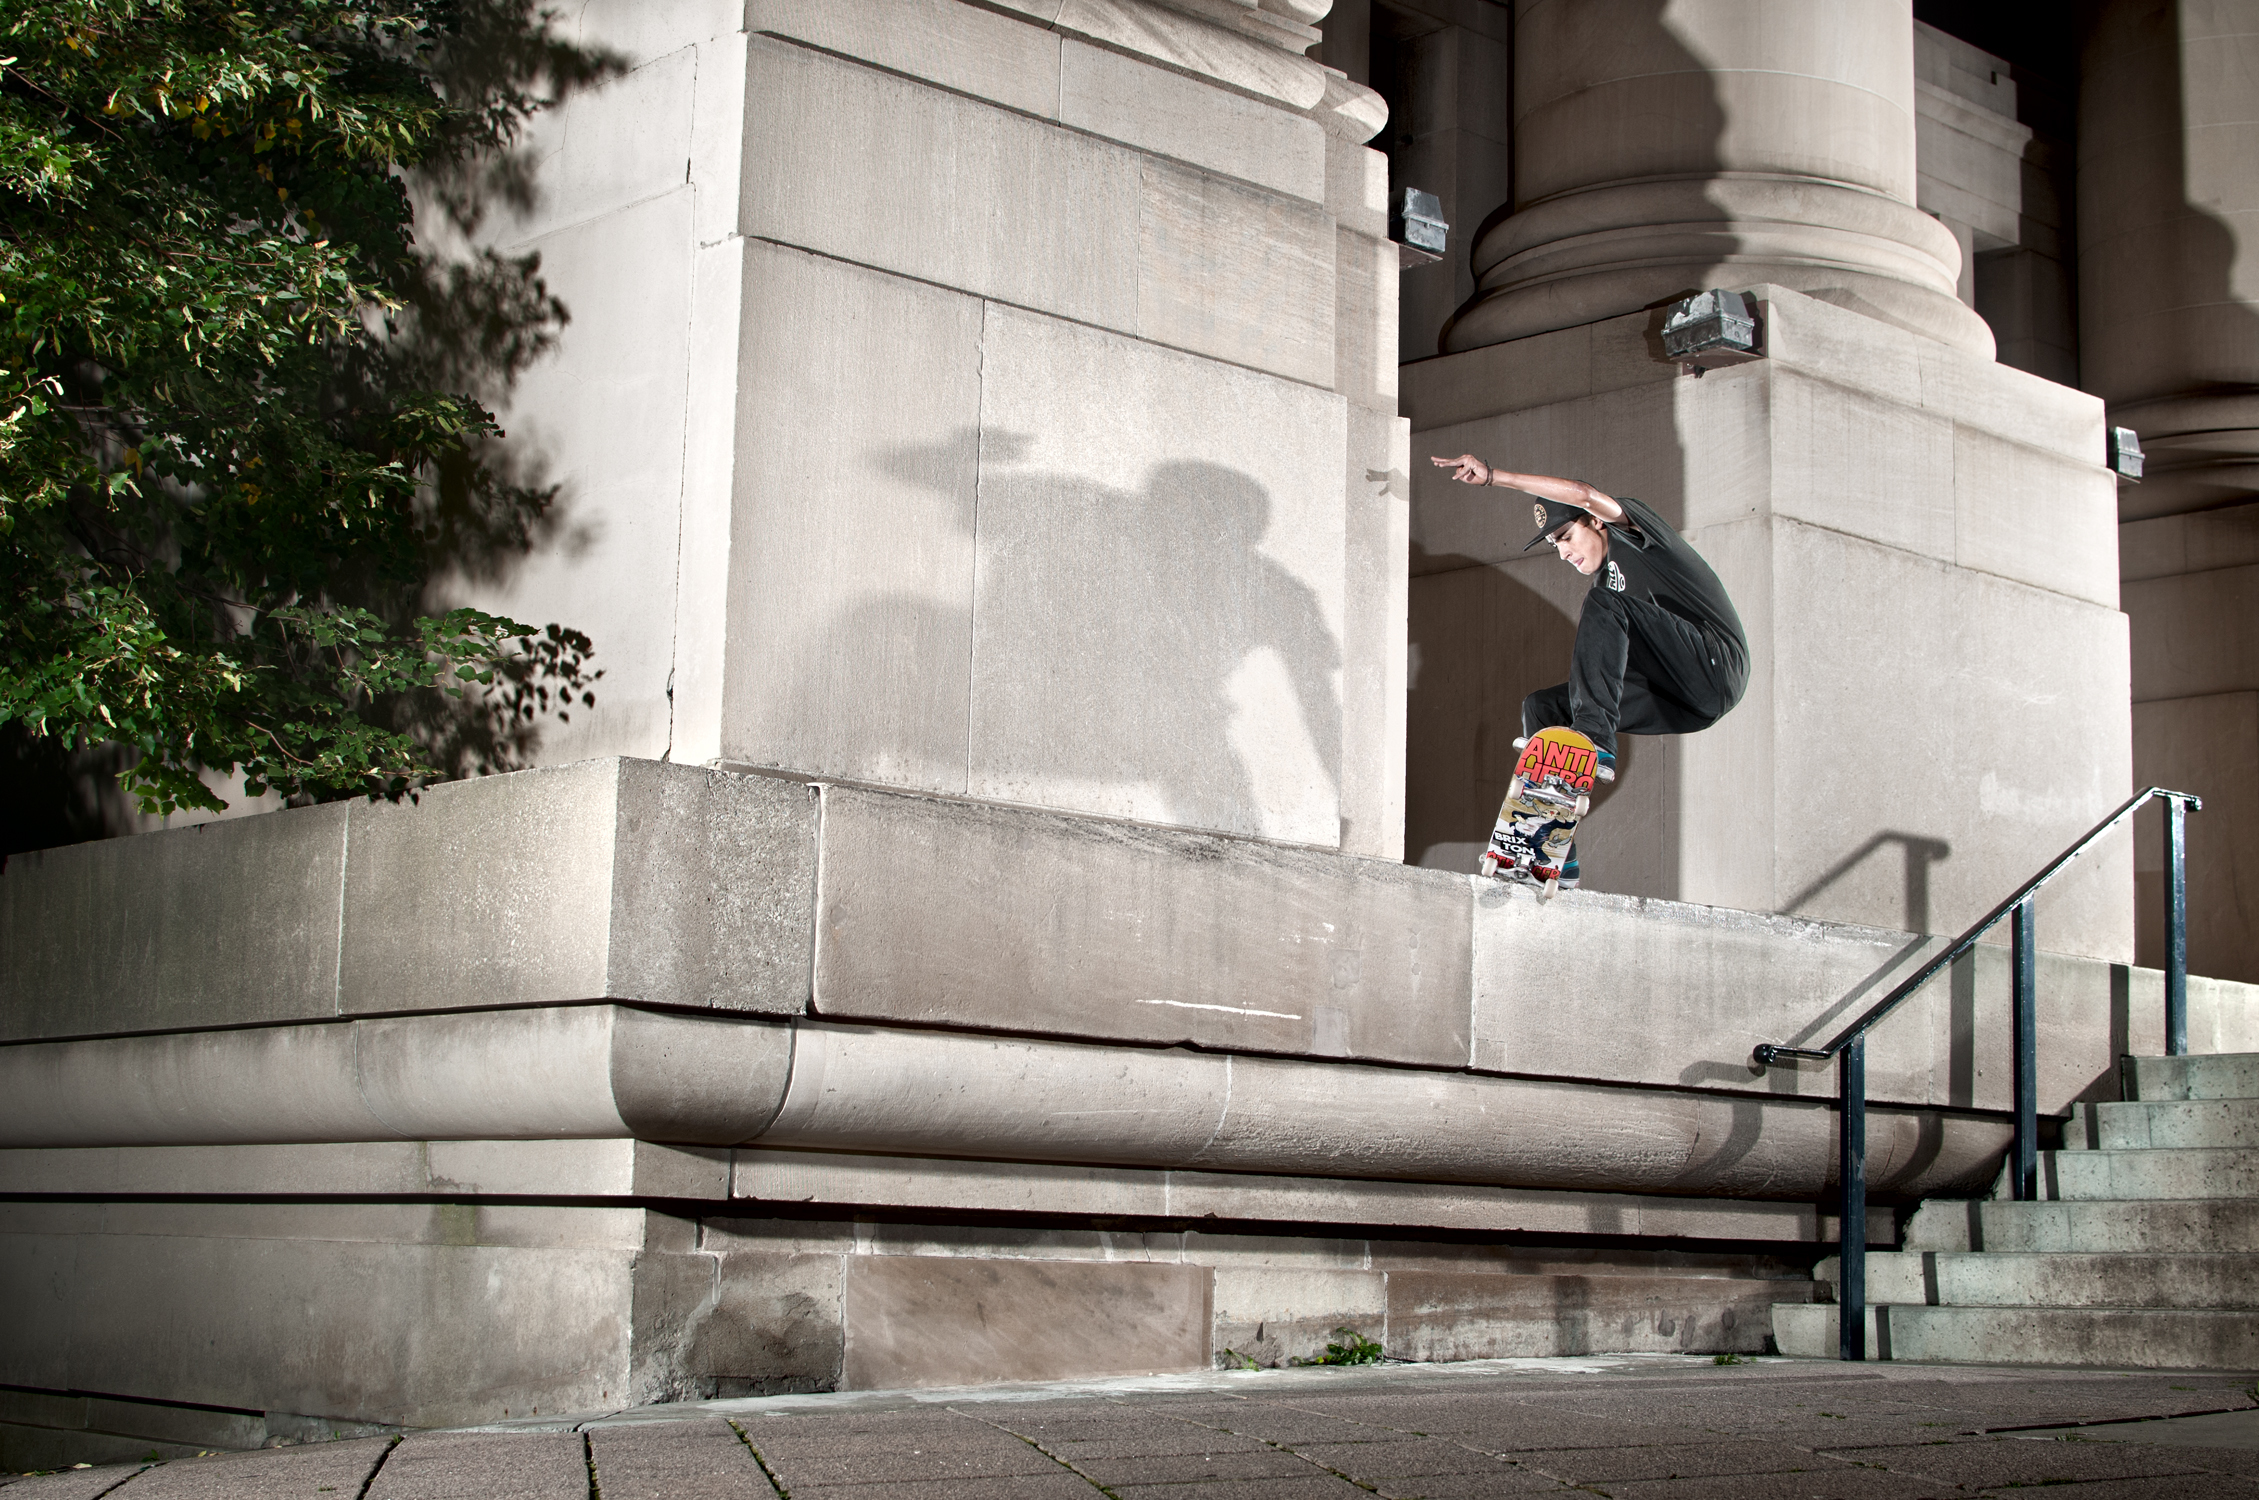 Sam Lind, Gap Out Frontside 5-0. Ottawa, ON 2012